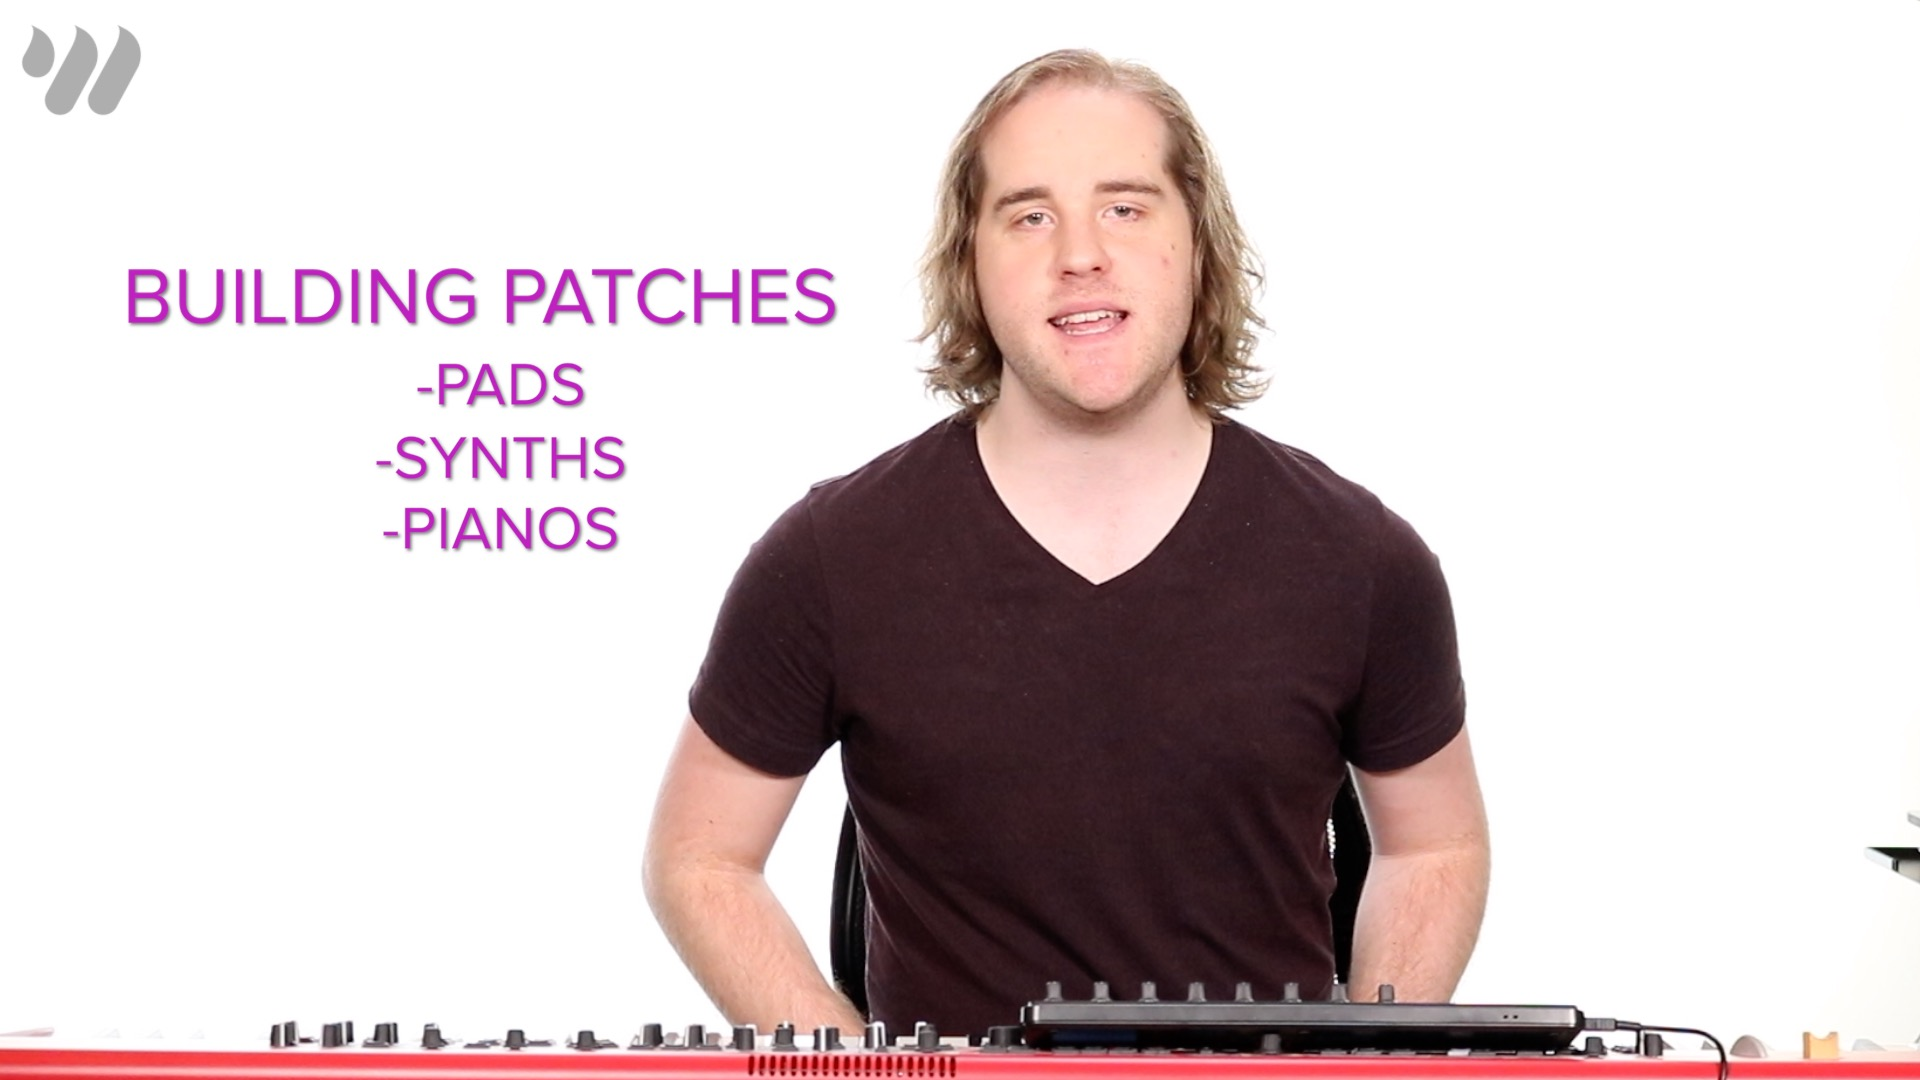 Worship keyboard tutorials are live new patch store baditri Images